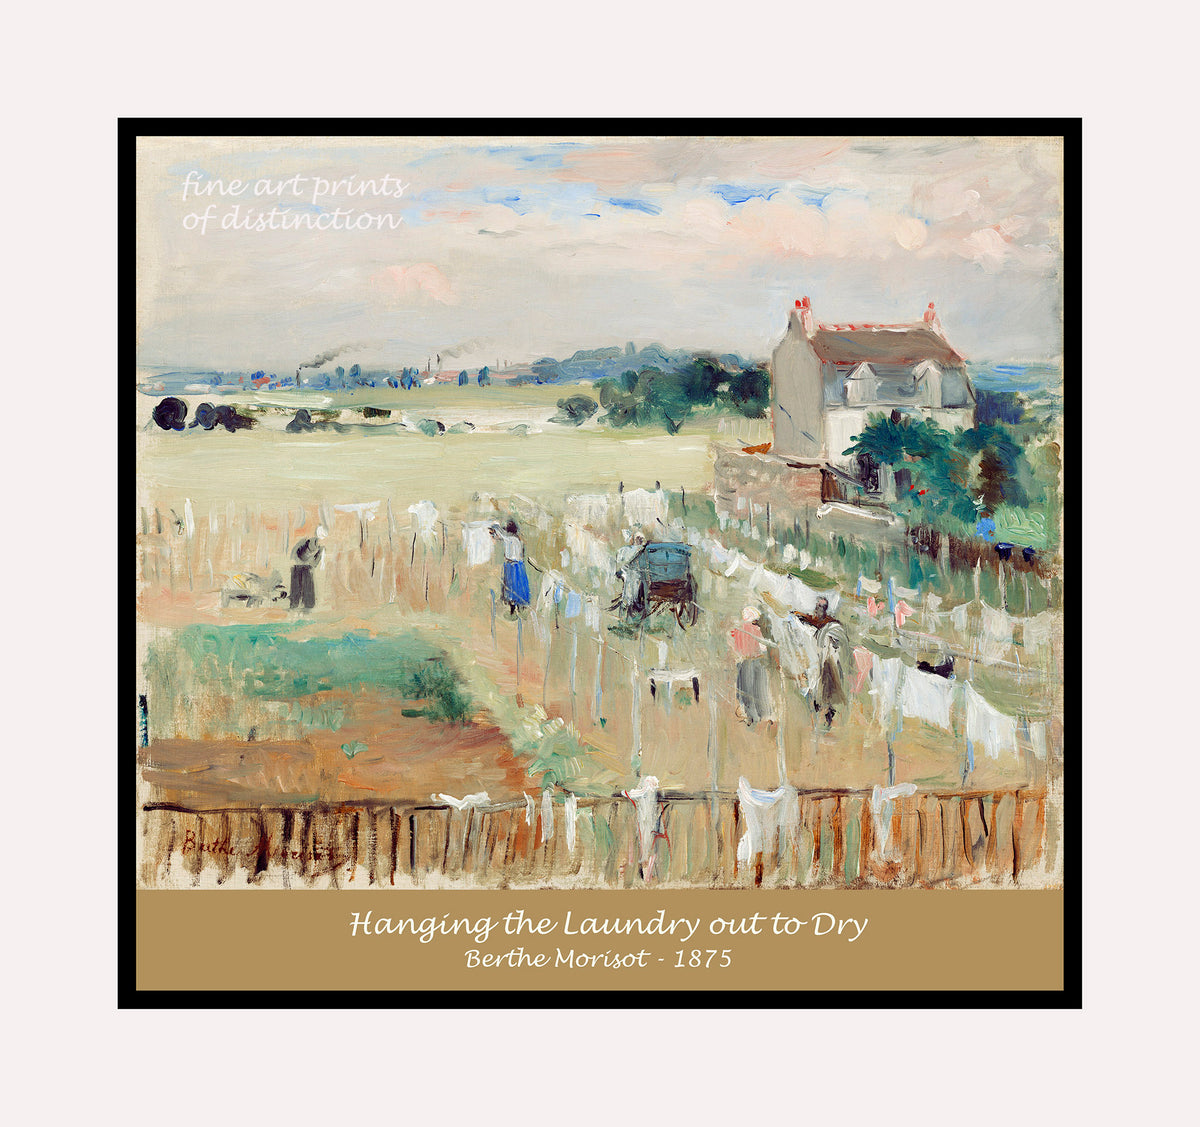 Hanging the Laundry out to Dry painted by Berthe Morisot premium poster